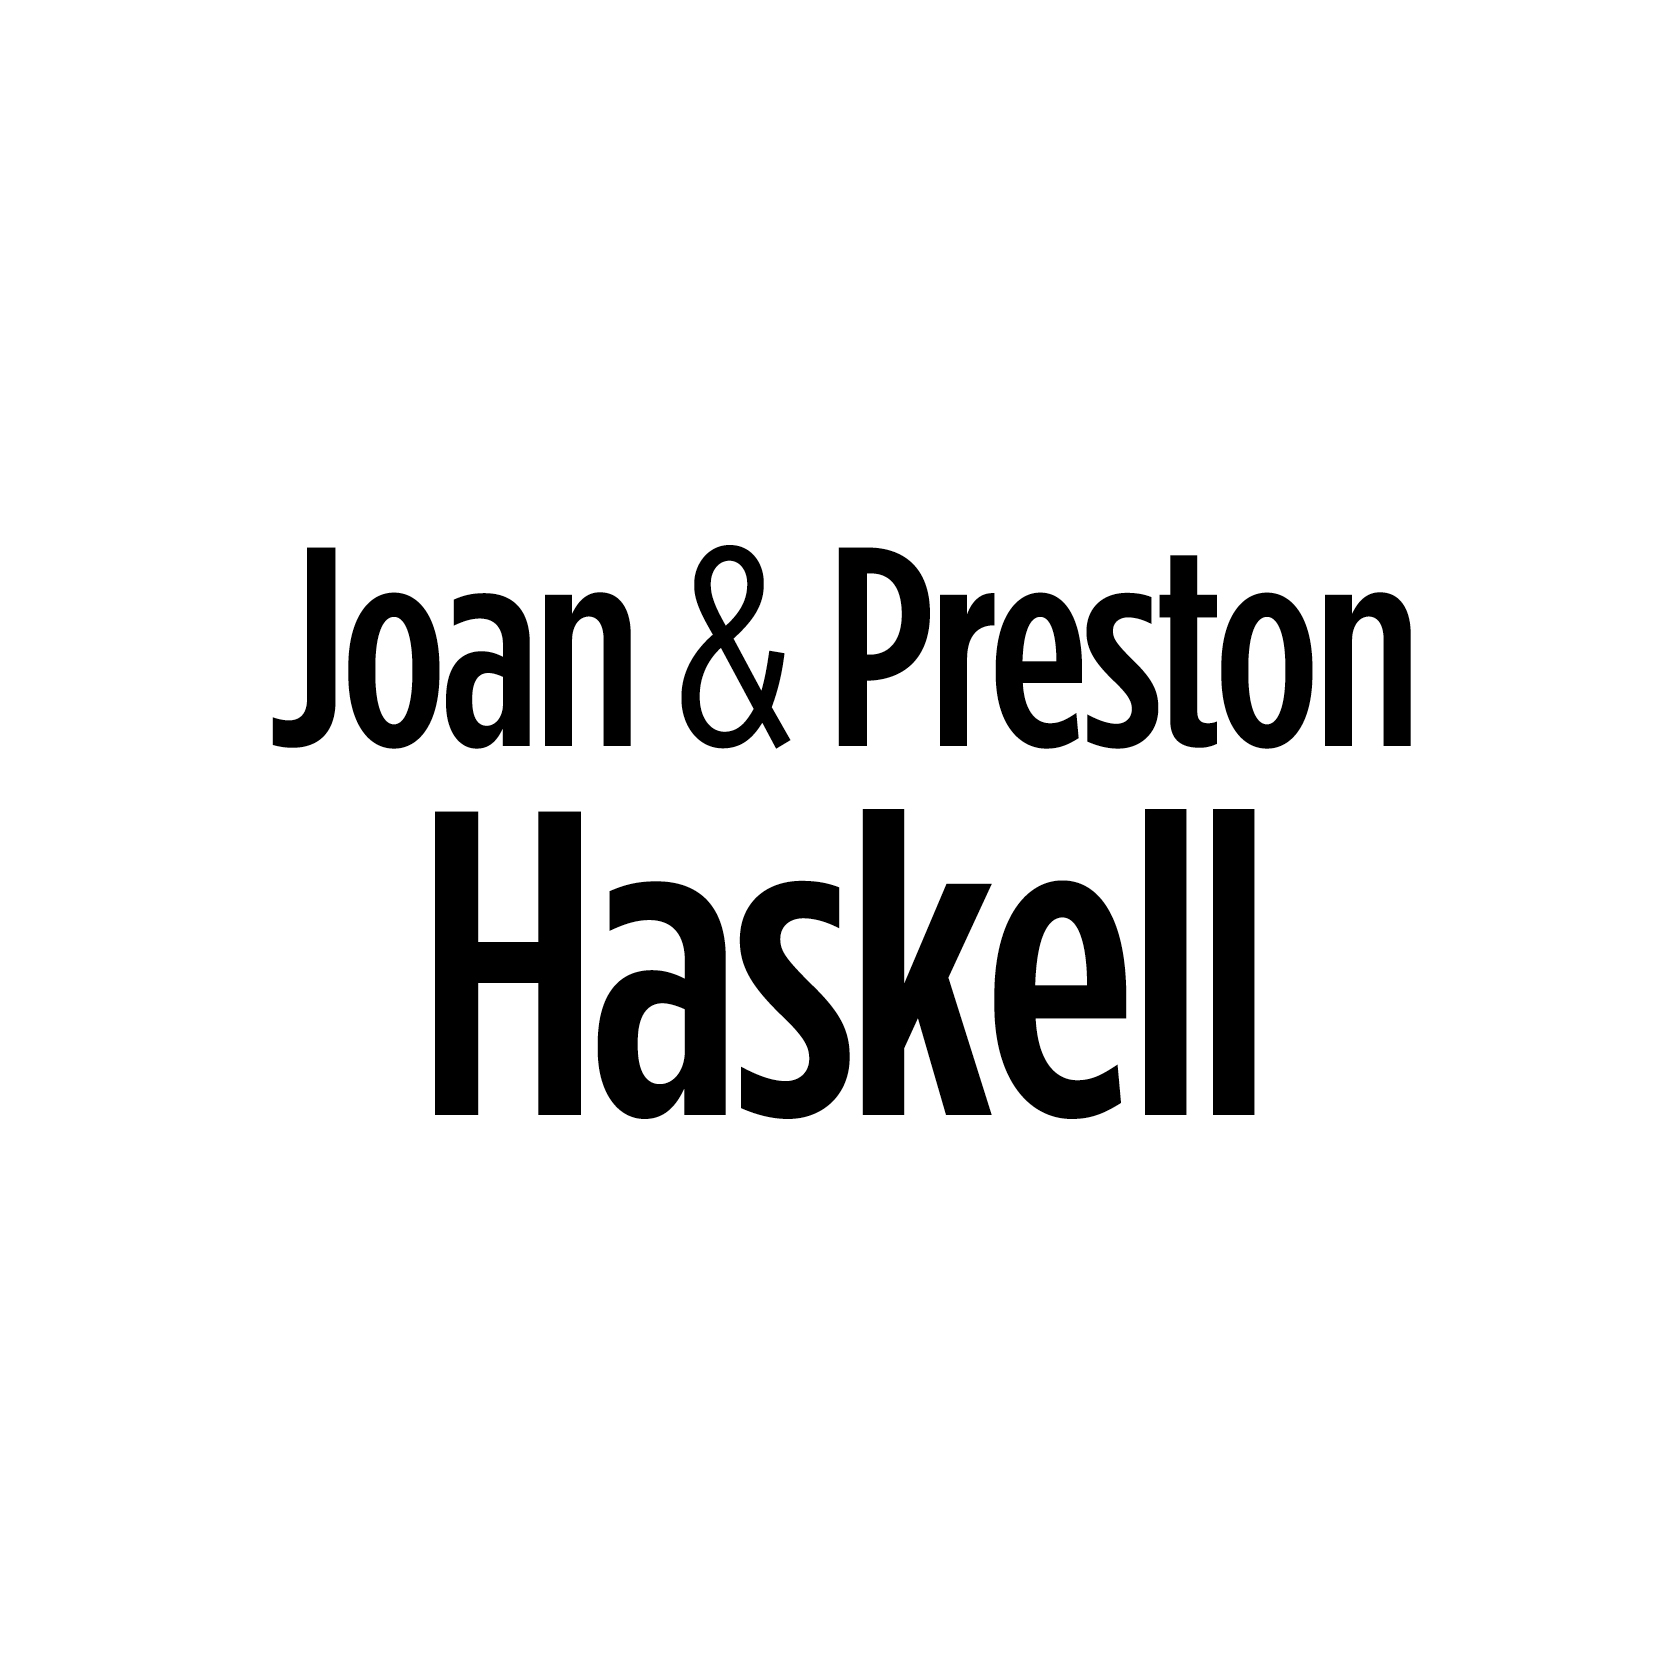 Joan and Preston Haskell